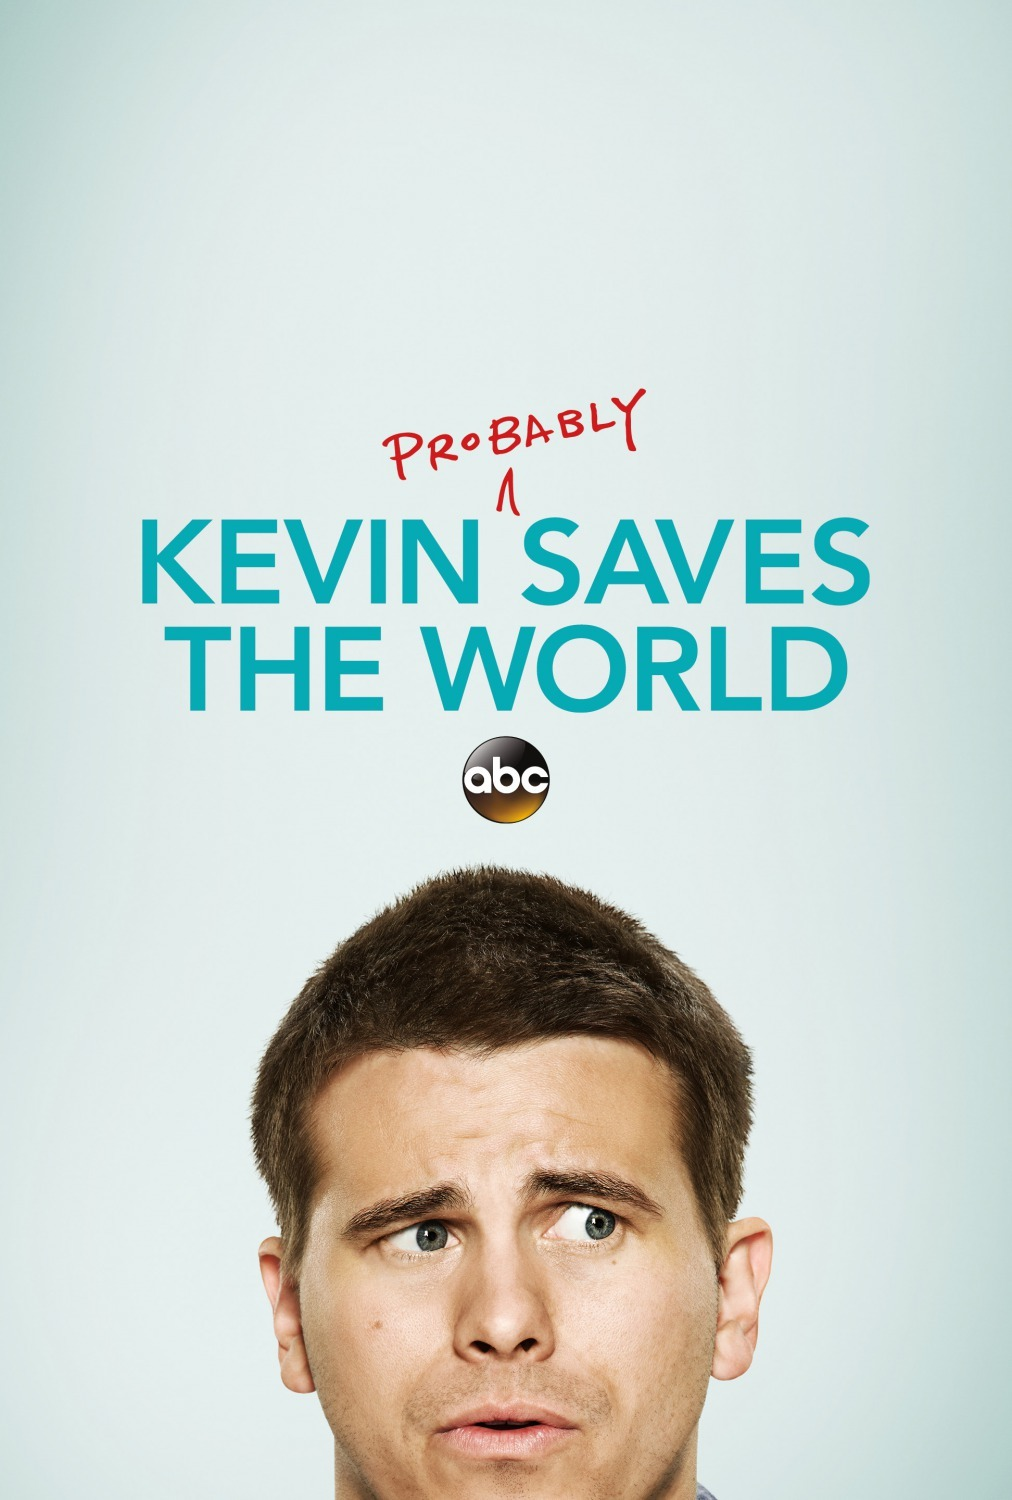 Kevin (Probably) Saves the World (TV Series 2017–2018) - IMDb